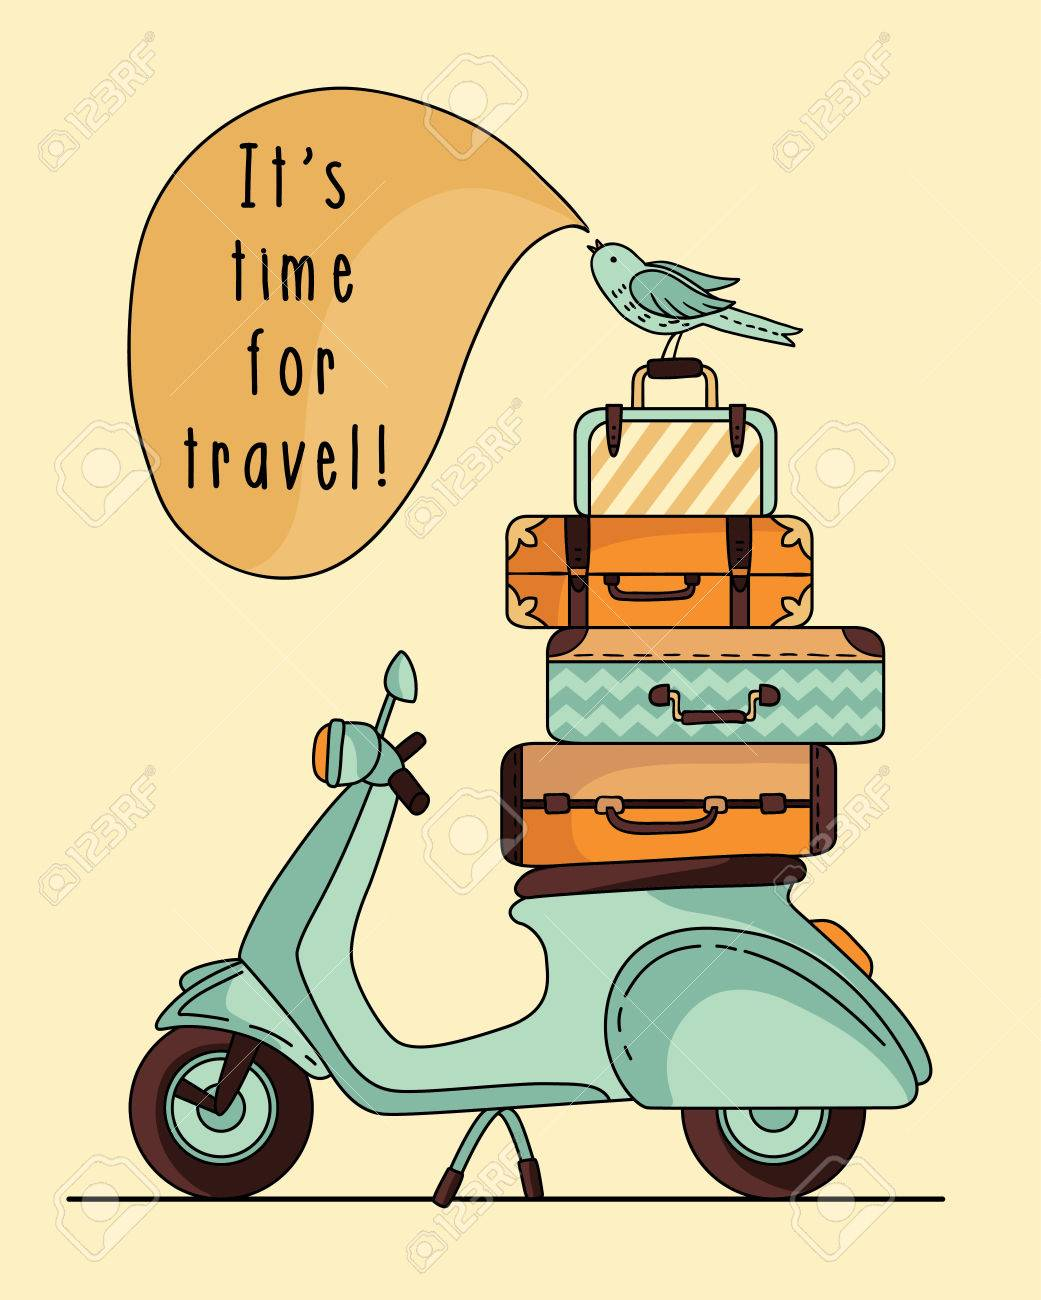 Vintage Scooter Poster Design Scooter With Baggage Royalty Free Cliparts Vectors And Stock Illustration Image 54701180